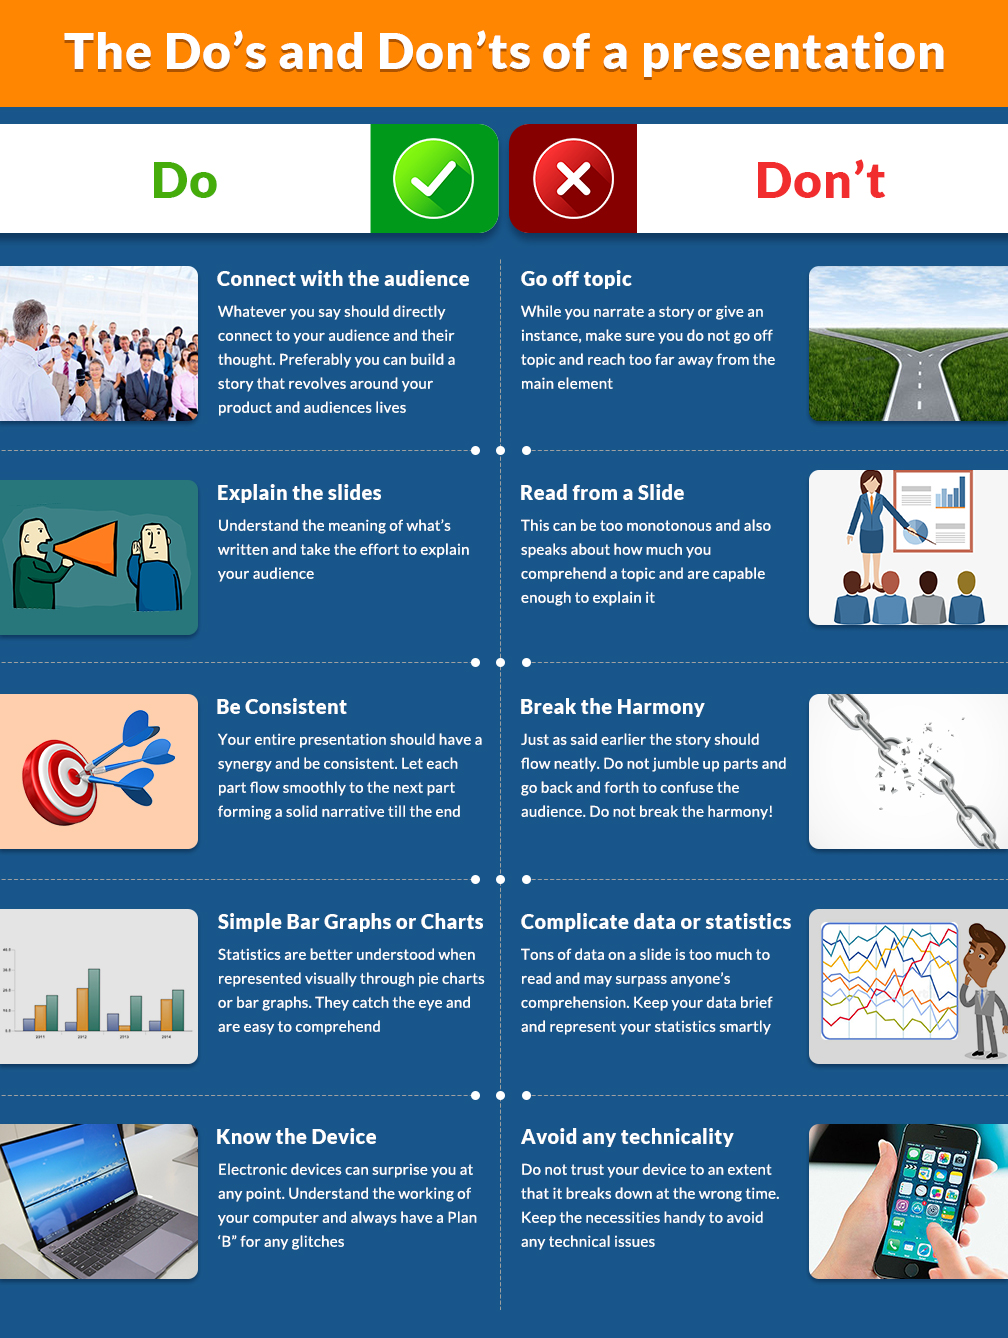 The Do's and Don'ts of a presentation